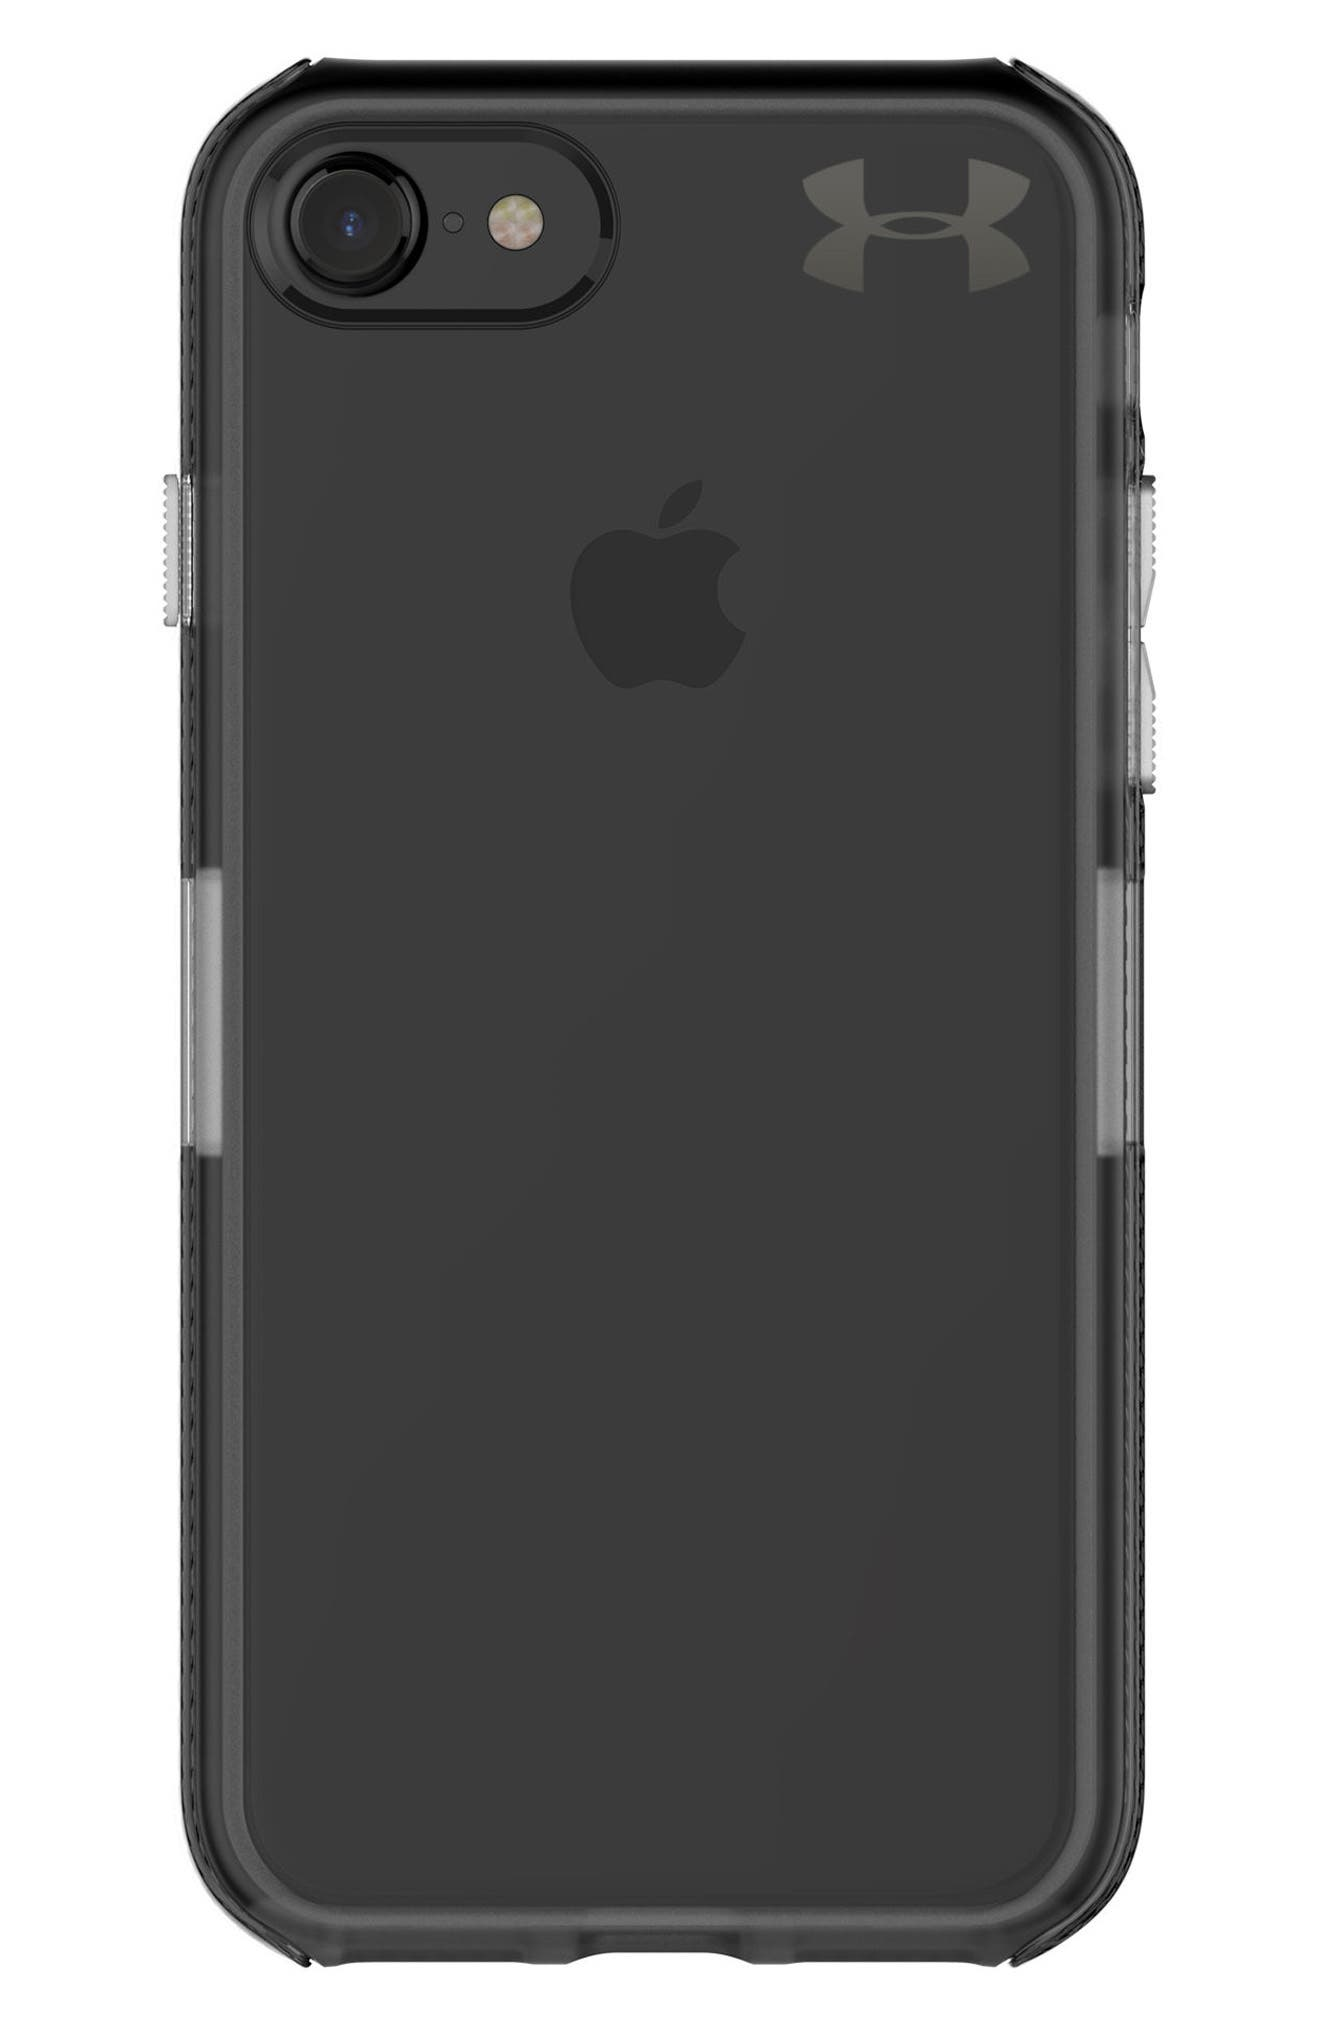 Main Image - Under Armour Protect Verge iPhone 7/8 Case